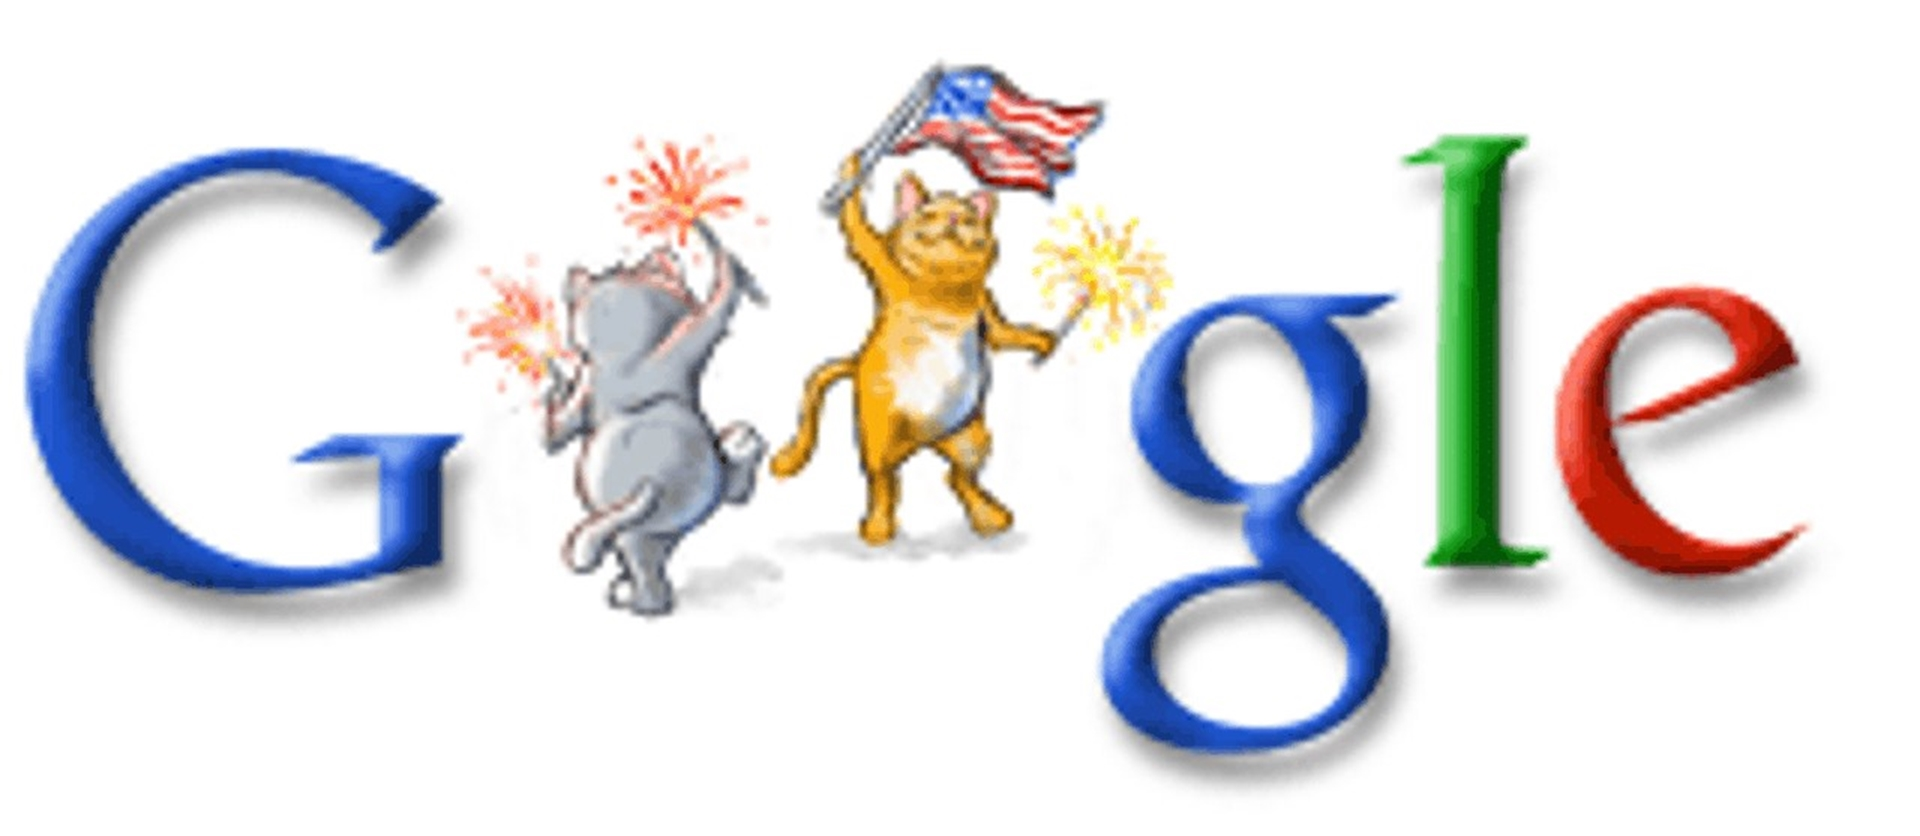 4th of July Google Doodle 2006